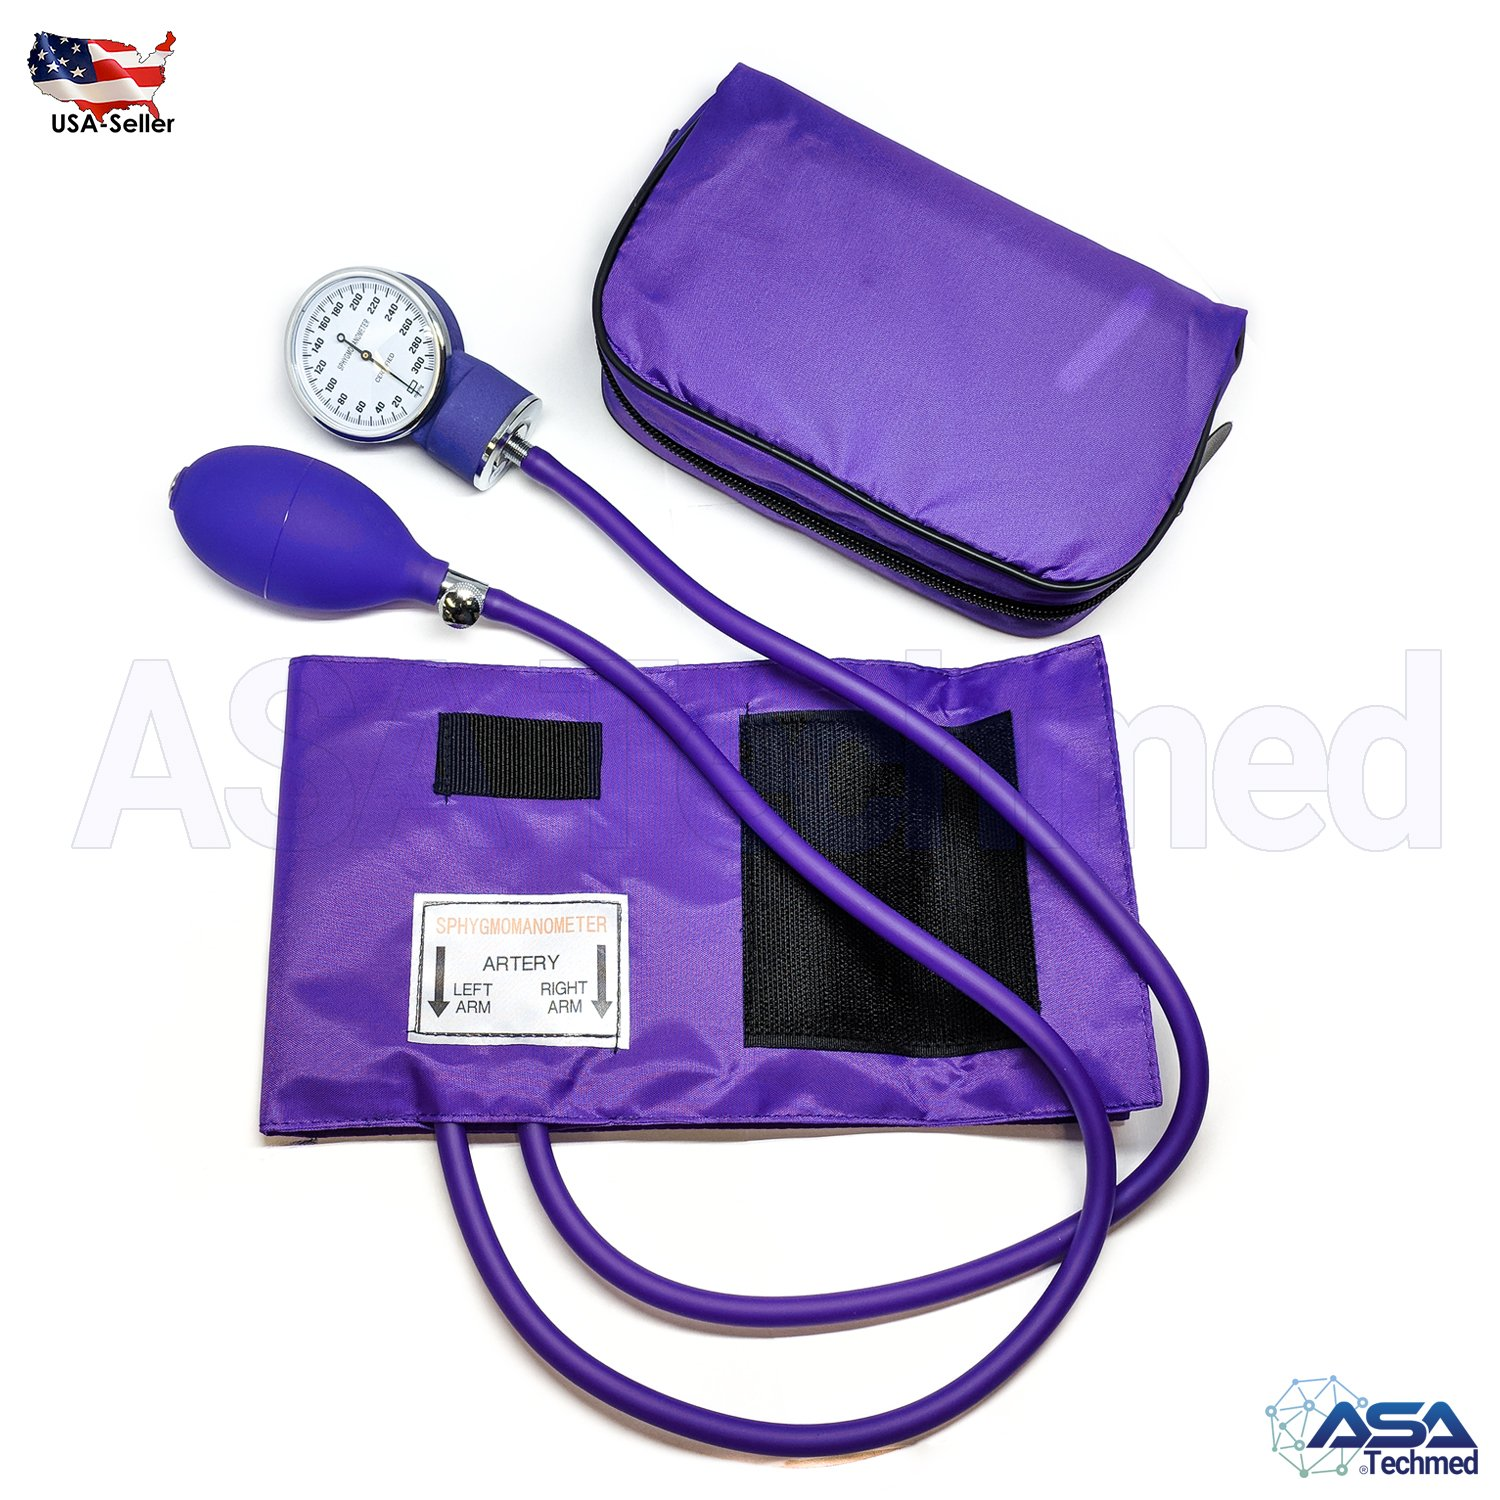 ASATechmed Nurse/EMT Starter Pack Stethoscope, Blood Pressure Monitor and Free Trauma 7.5'' EMT Shear Ideal Gift for Nurse, EMT, Medical Students, Firefighter, Police and Personal Use (Purple) by ASATechmed (Image #2)